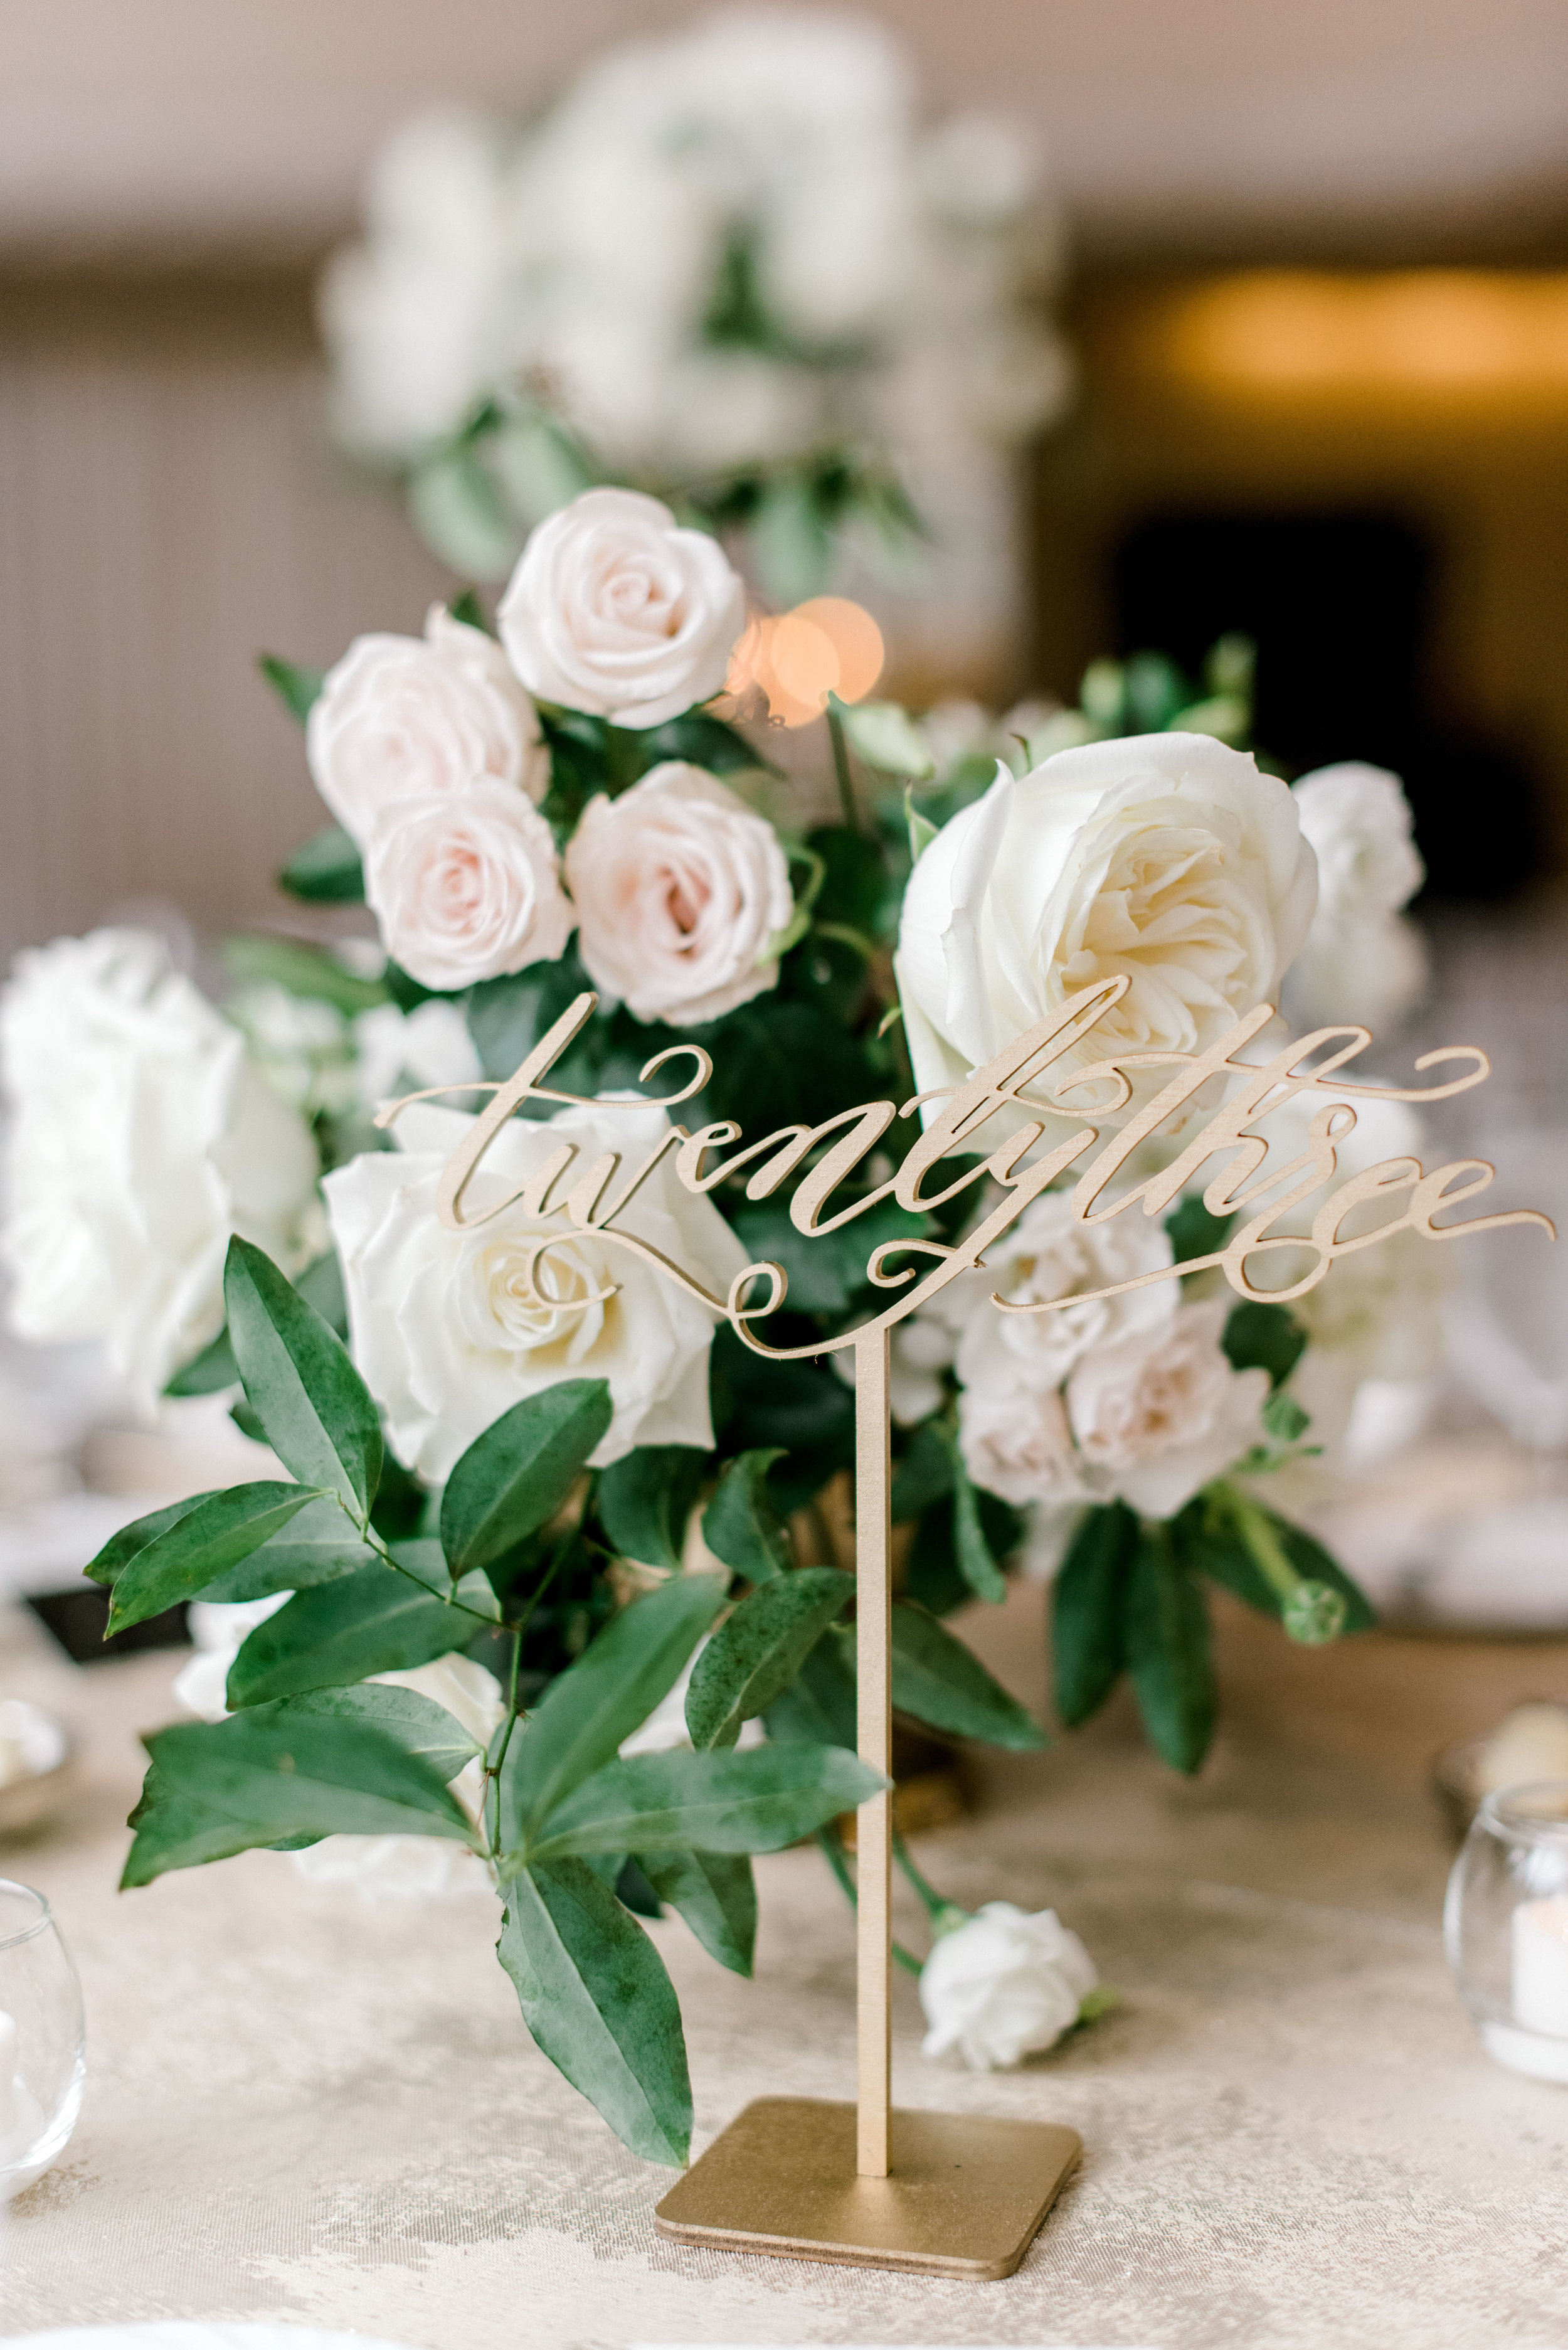 wedding-details-photography-dana-fernandez-reception-four-seasons-rose-white-blush-gold-calligraphy-table-number-floral-greenery-by-maxit-flower-design-houston-texas